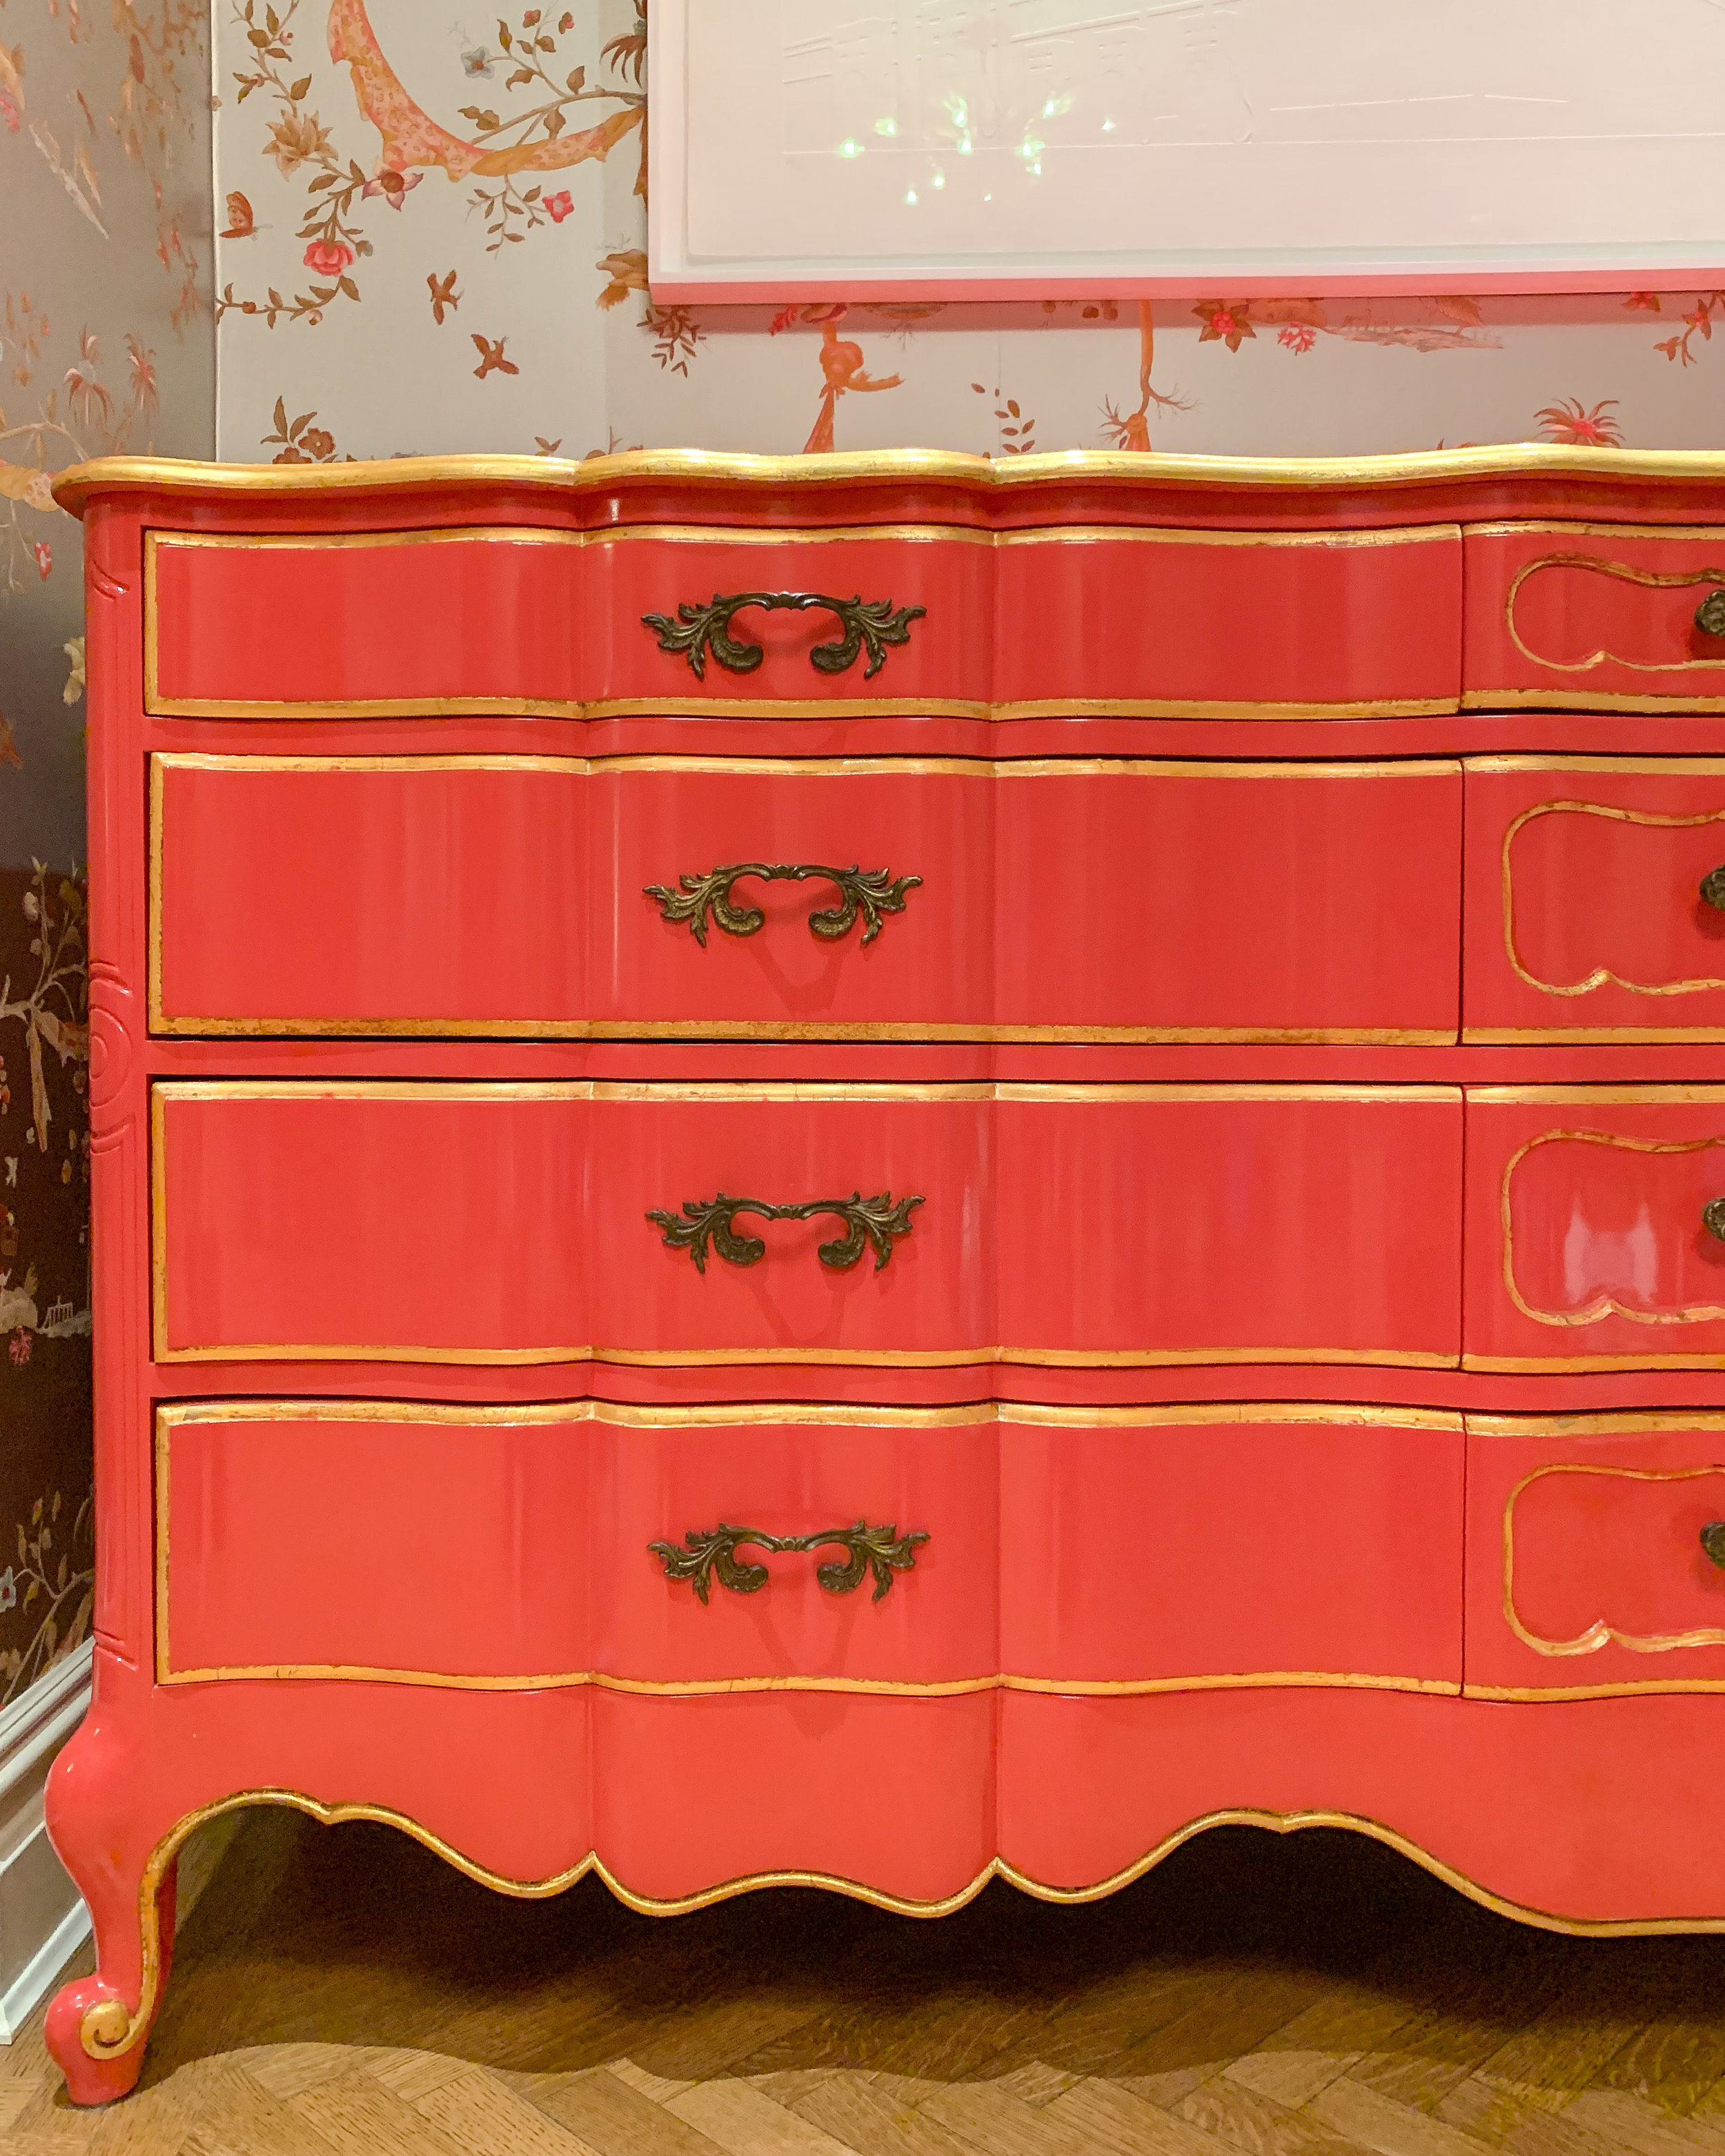 Lacquered Vintage Dresser  - Vintage French provincial style dresser lacquered in a custom coral color with gilded detailing to accentuate the beautiful lines.